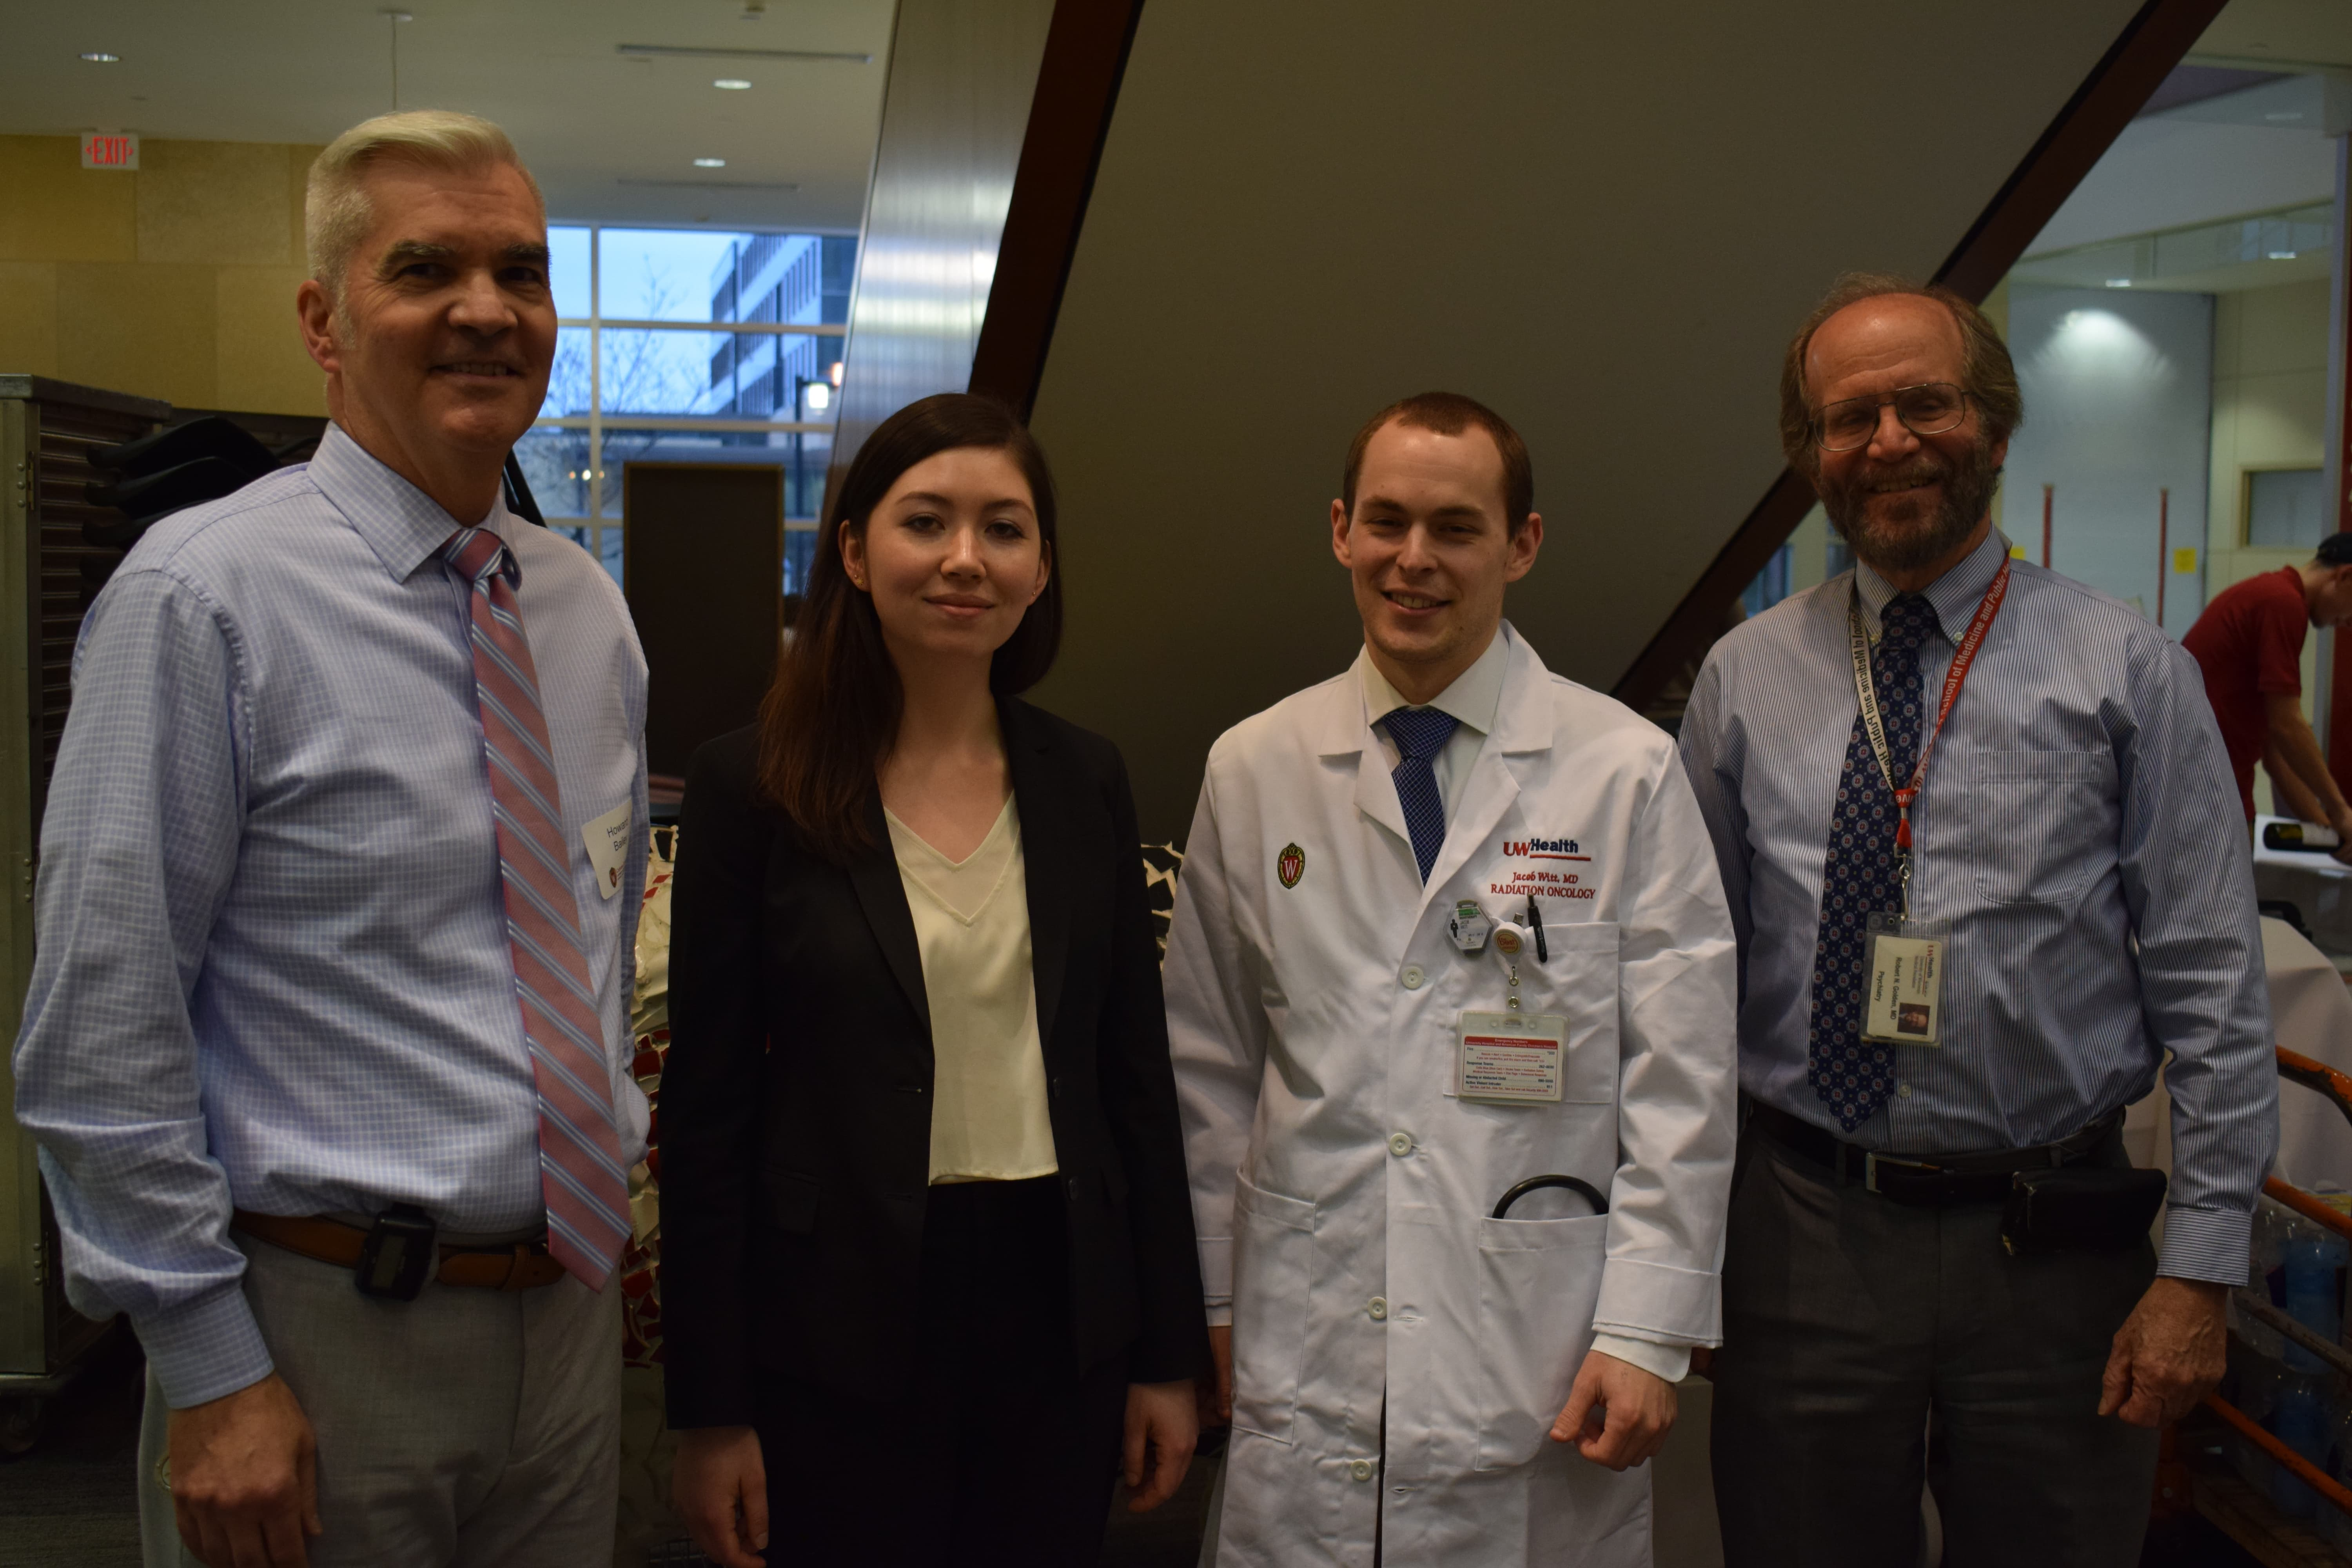 cancer biology graduate student Kristine Donahue and UW Human Oncology resident Dr. Jacob Witt pictured with Carbone Cancer Center Director Dr. Howard Bailey and SMPH Dean Dr. Robert Golden